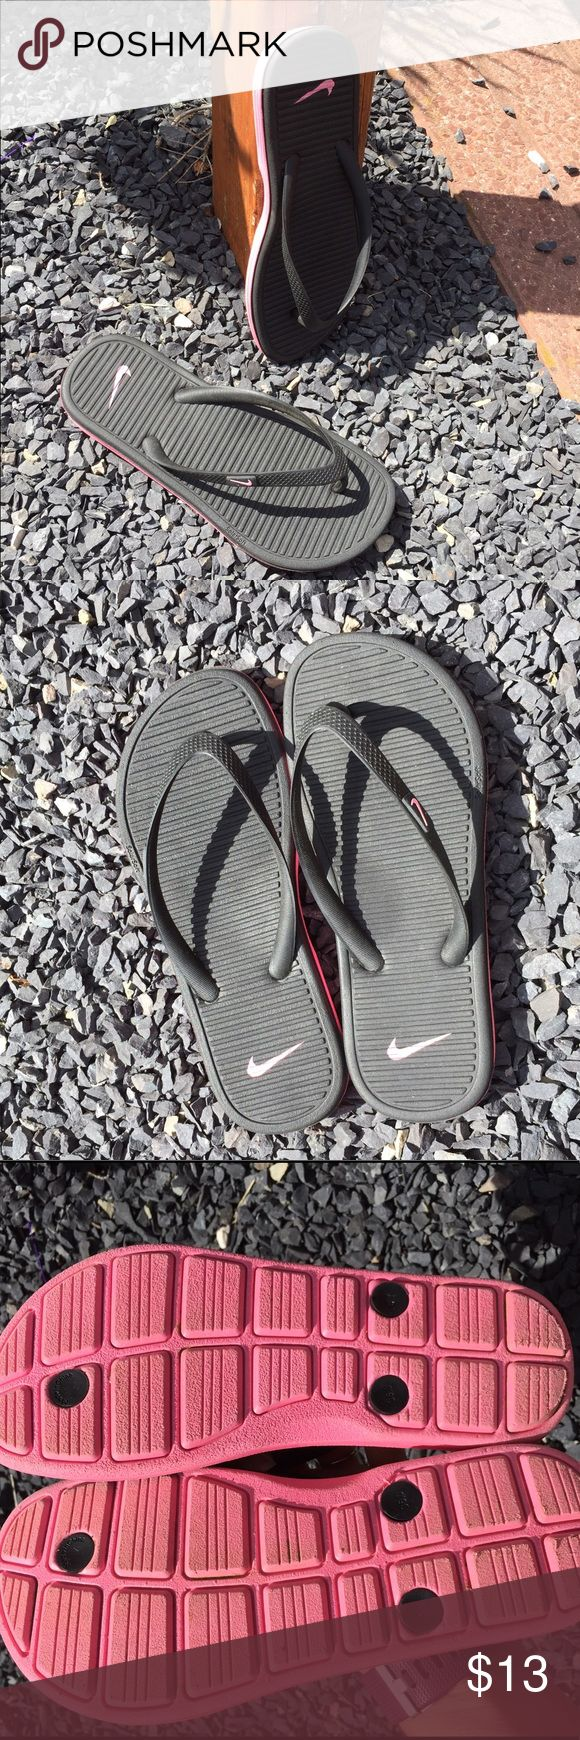 Nike Youth Girls Flip Flops Size 4 Size Youth 4. Gently preowned. Be sure to view the other items in our closet. We offer  women's, Mens and kids items in a variety of sizes. Bundle and save!! Thank you for viewing our item!! Nike Shoes Sandals & Flip Flops